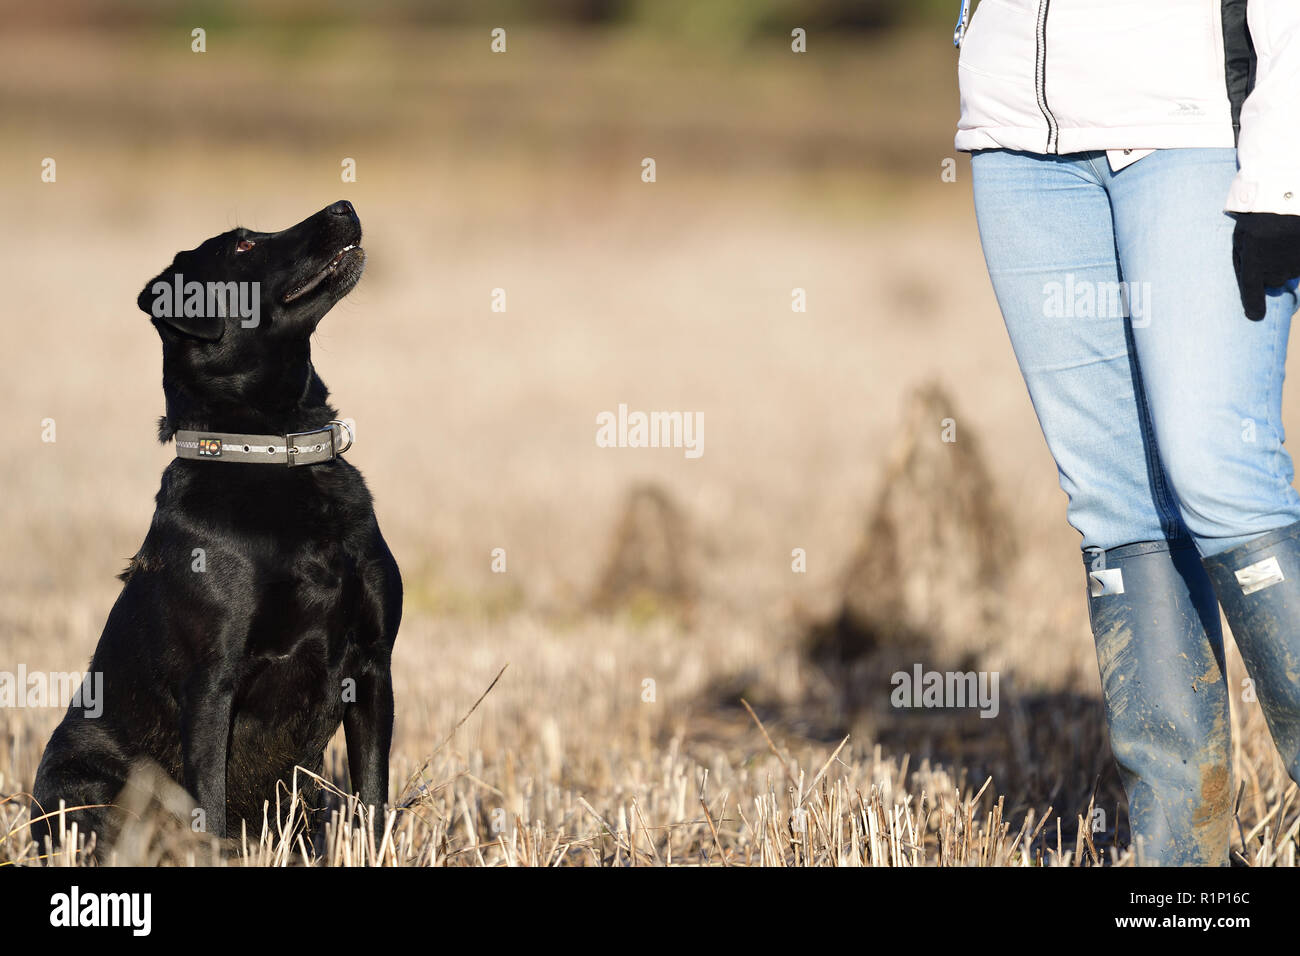 Portrait of a young black Labrador sitting in front of a person - Stock Image